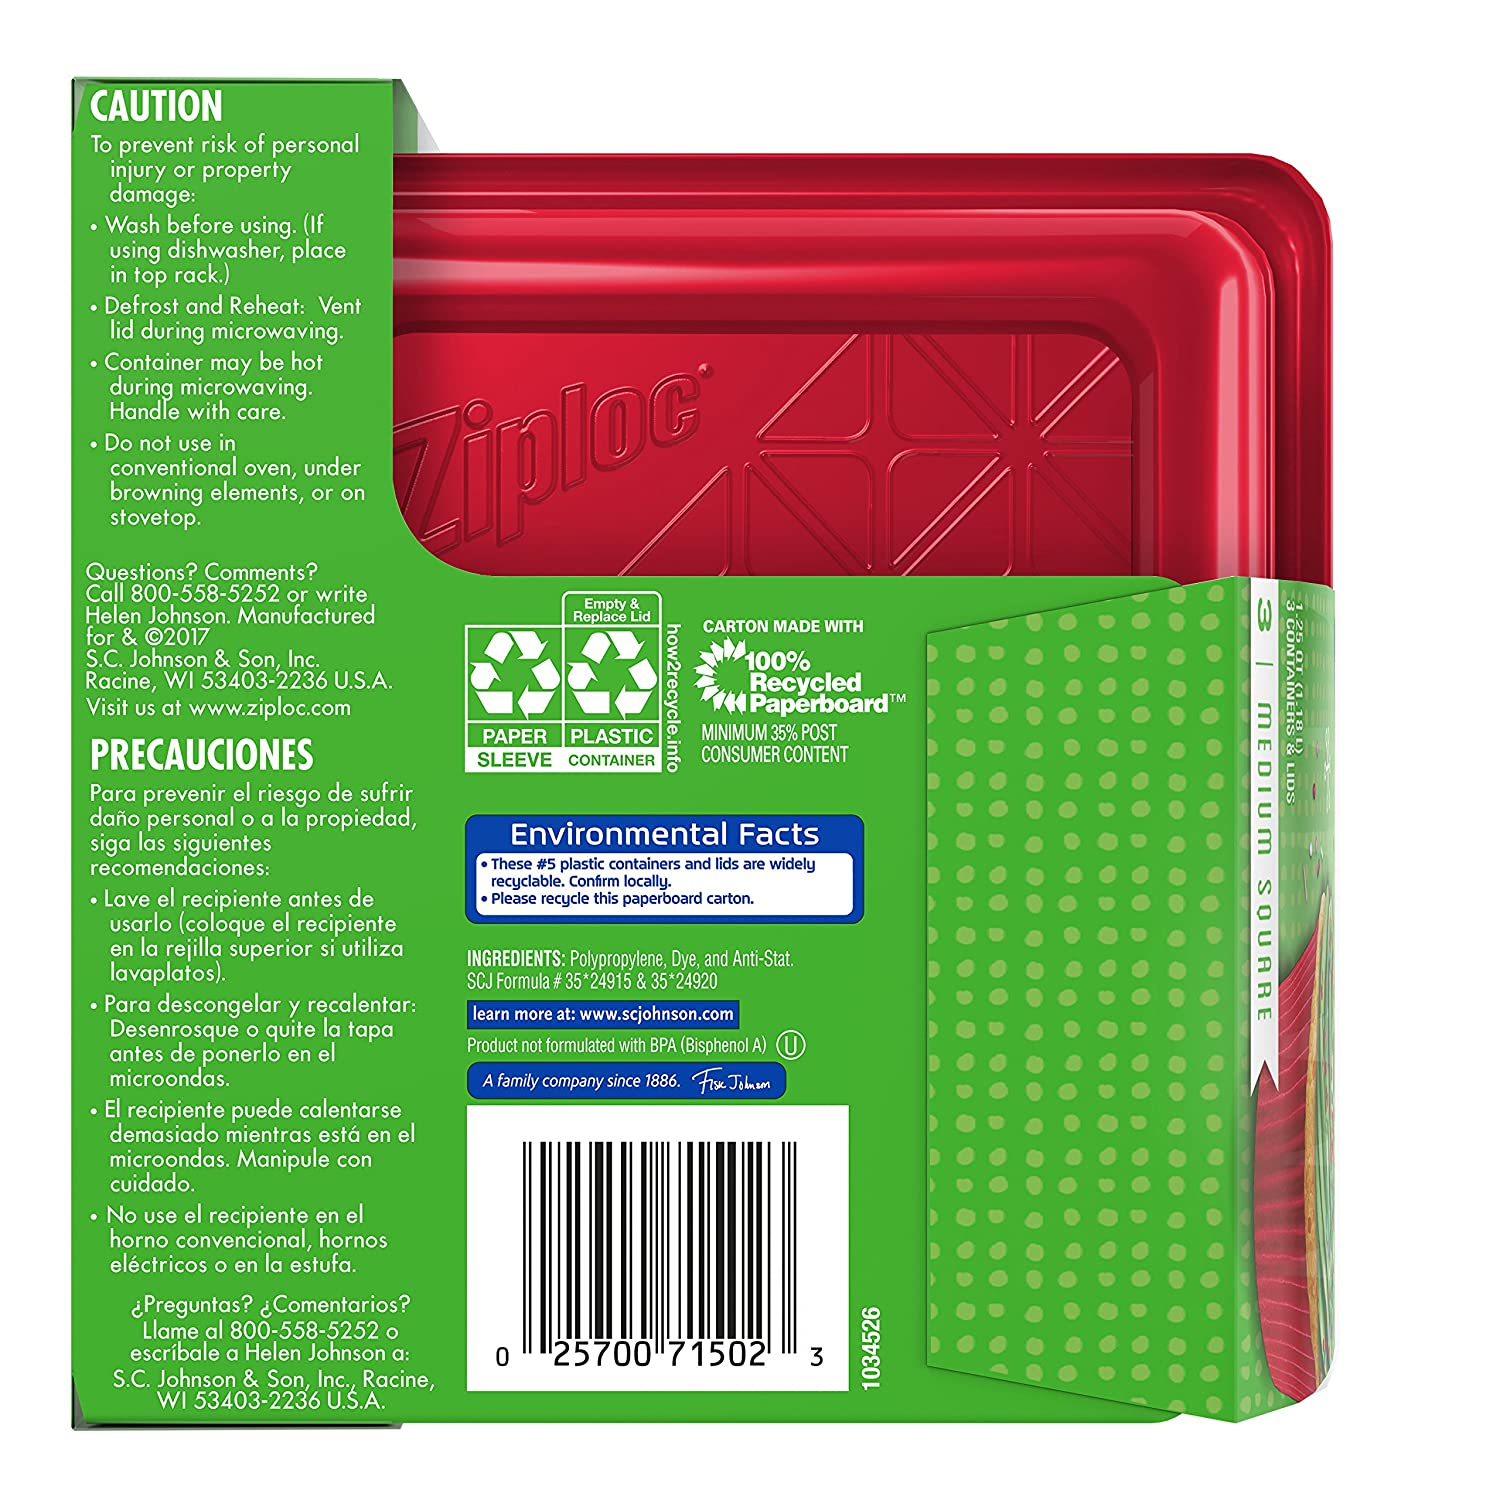 Amazon.com: Ziploc Limited Edition Holiday Container, Red, Medium Square, 3 Count: Health & Personal Care